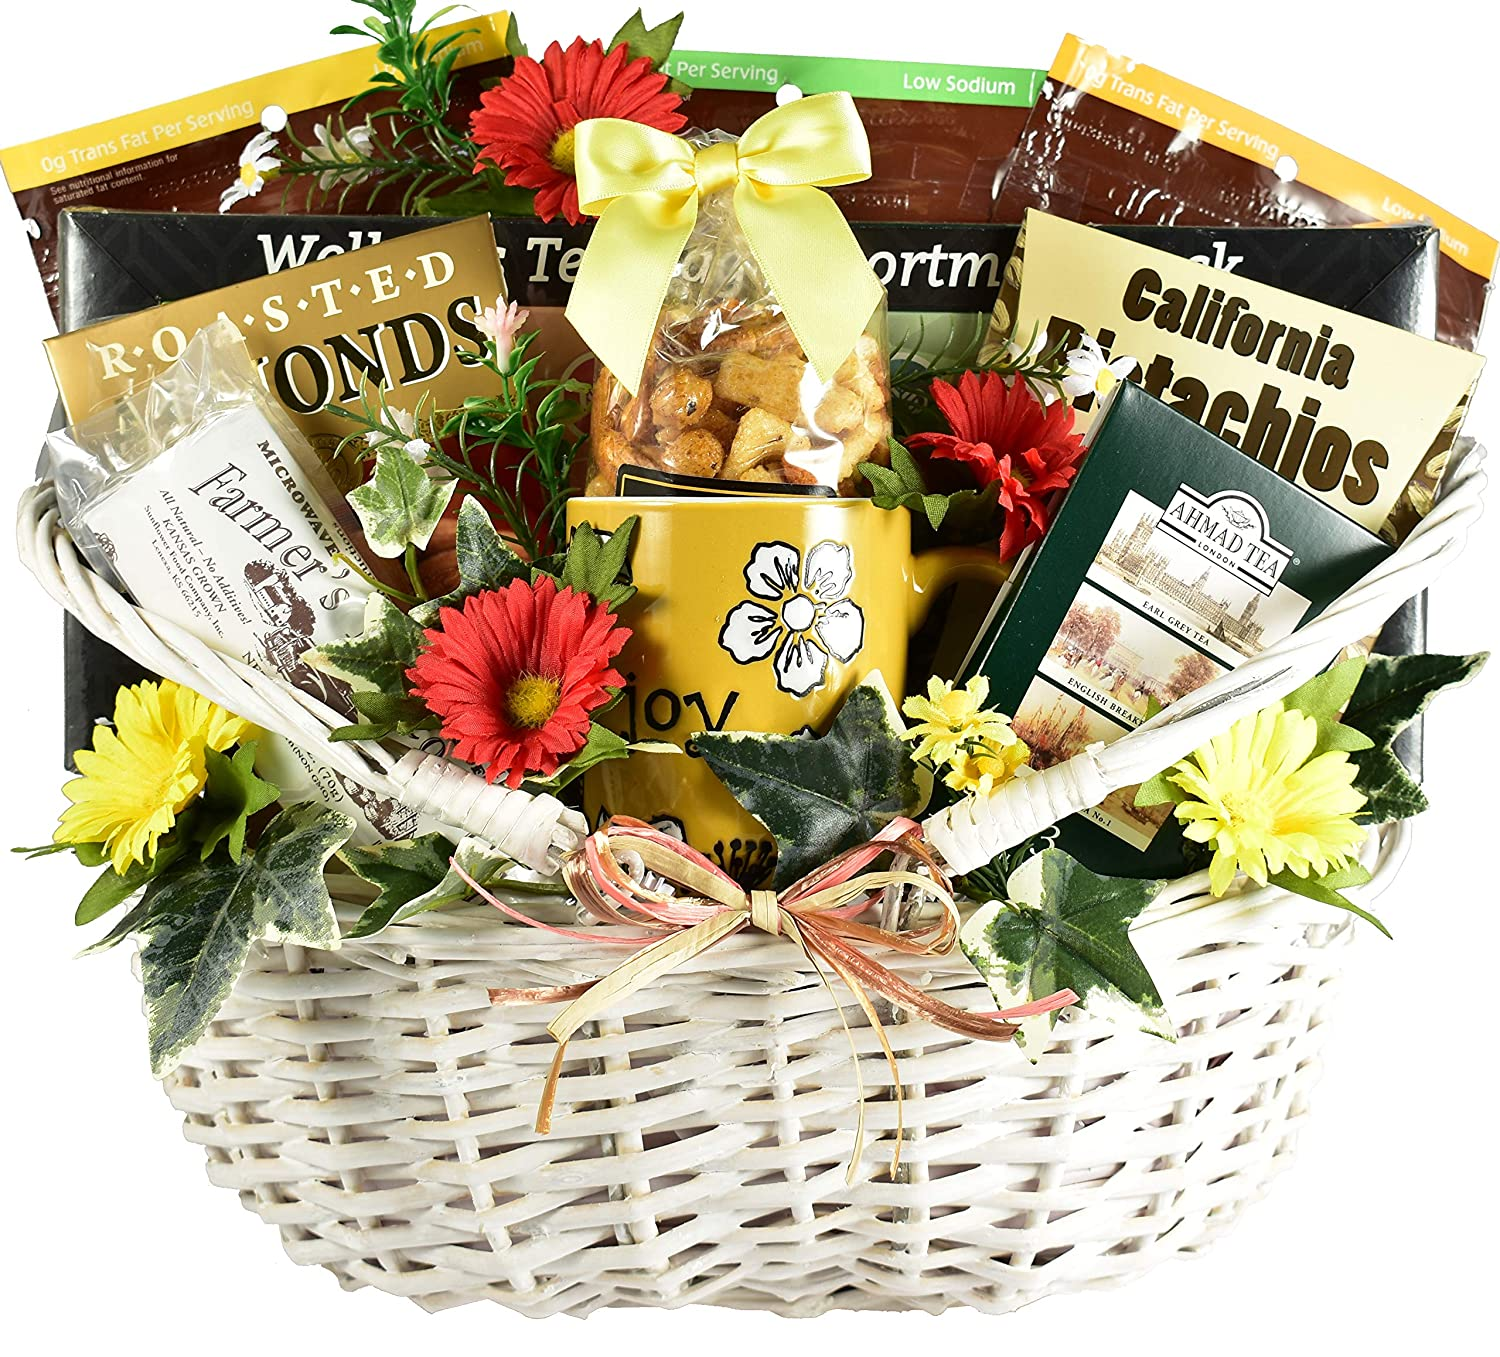 Gift Basket Village The Health Nut Sugar Free Gift Basket with A Variety of Tasty Health Conscious Treats